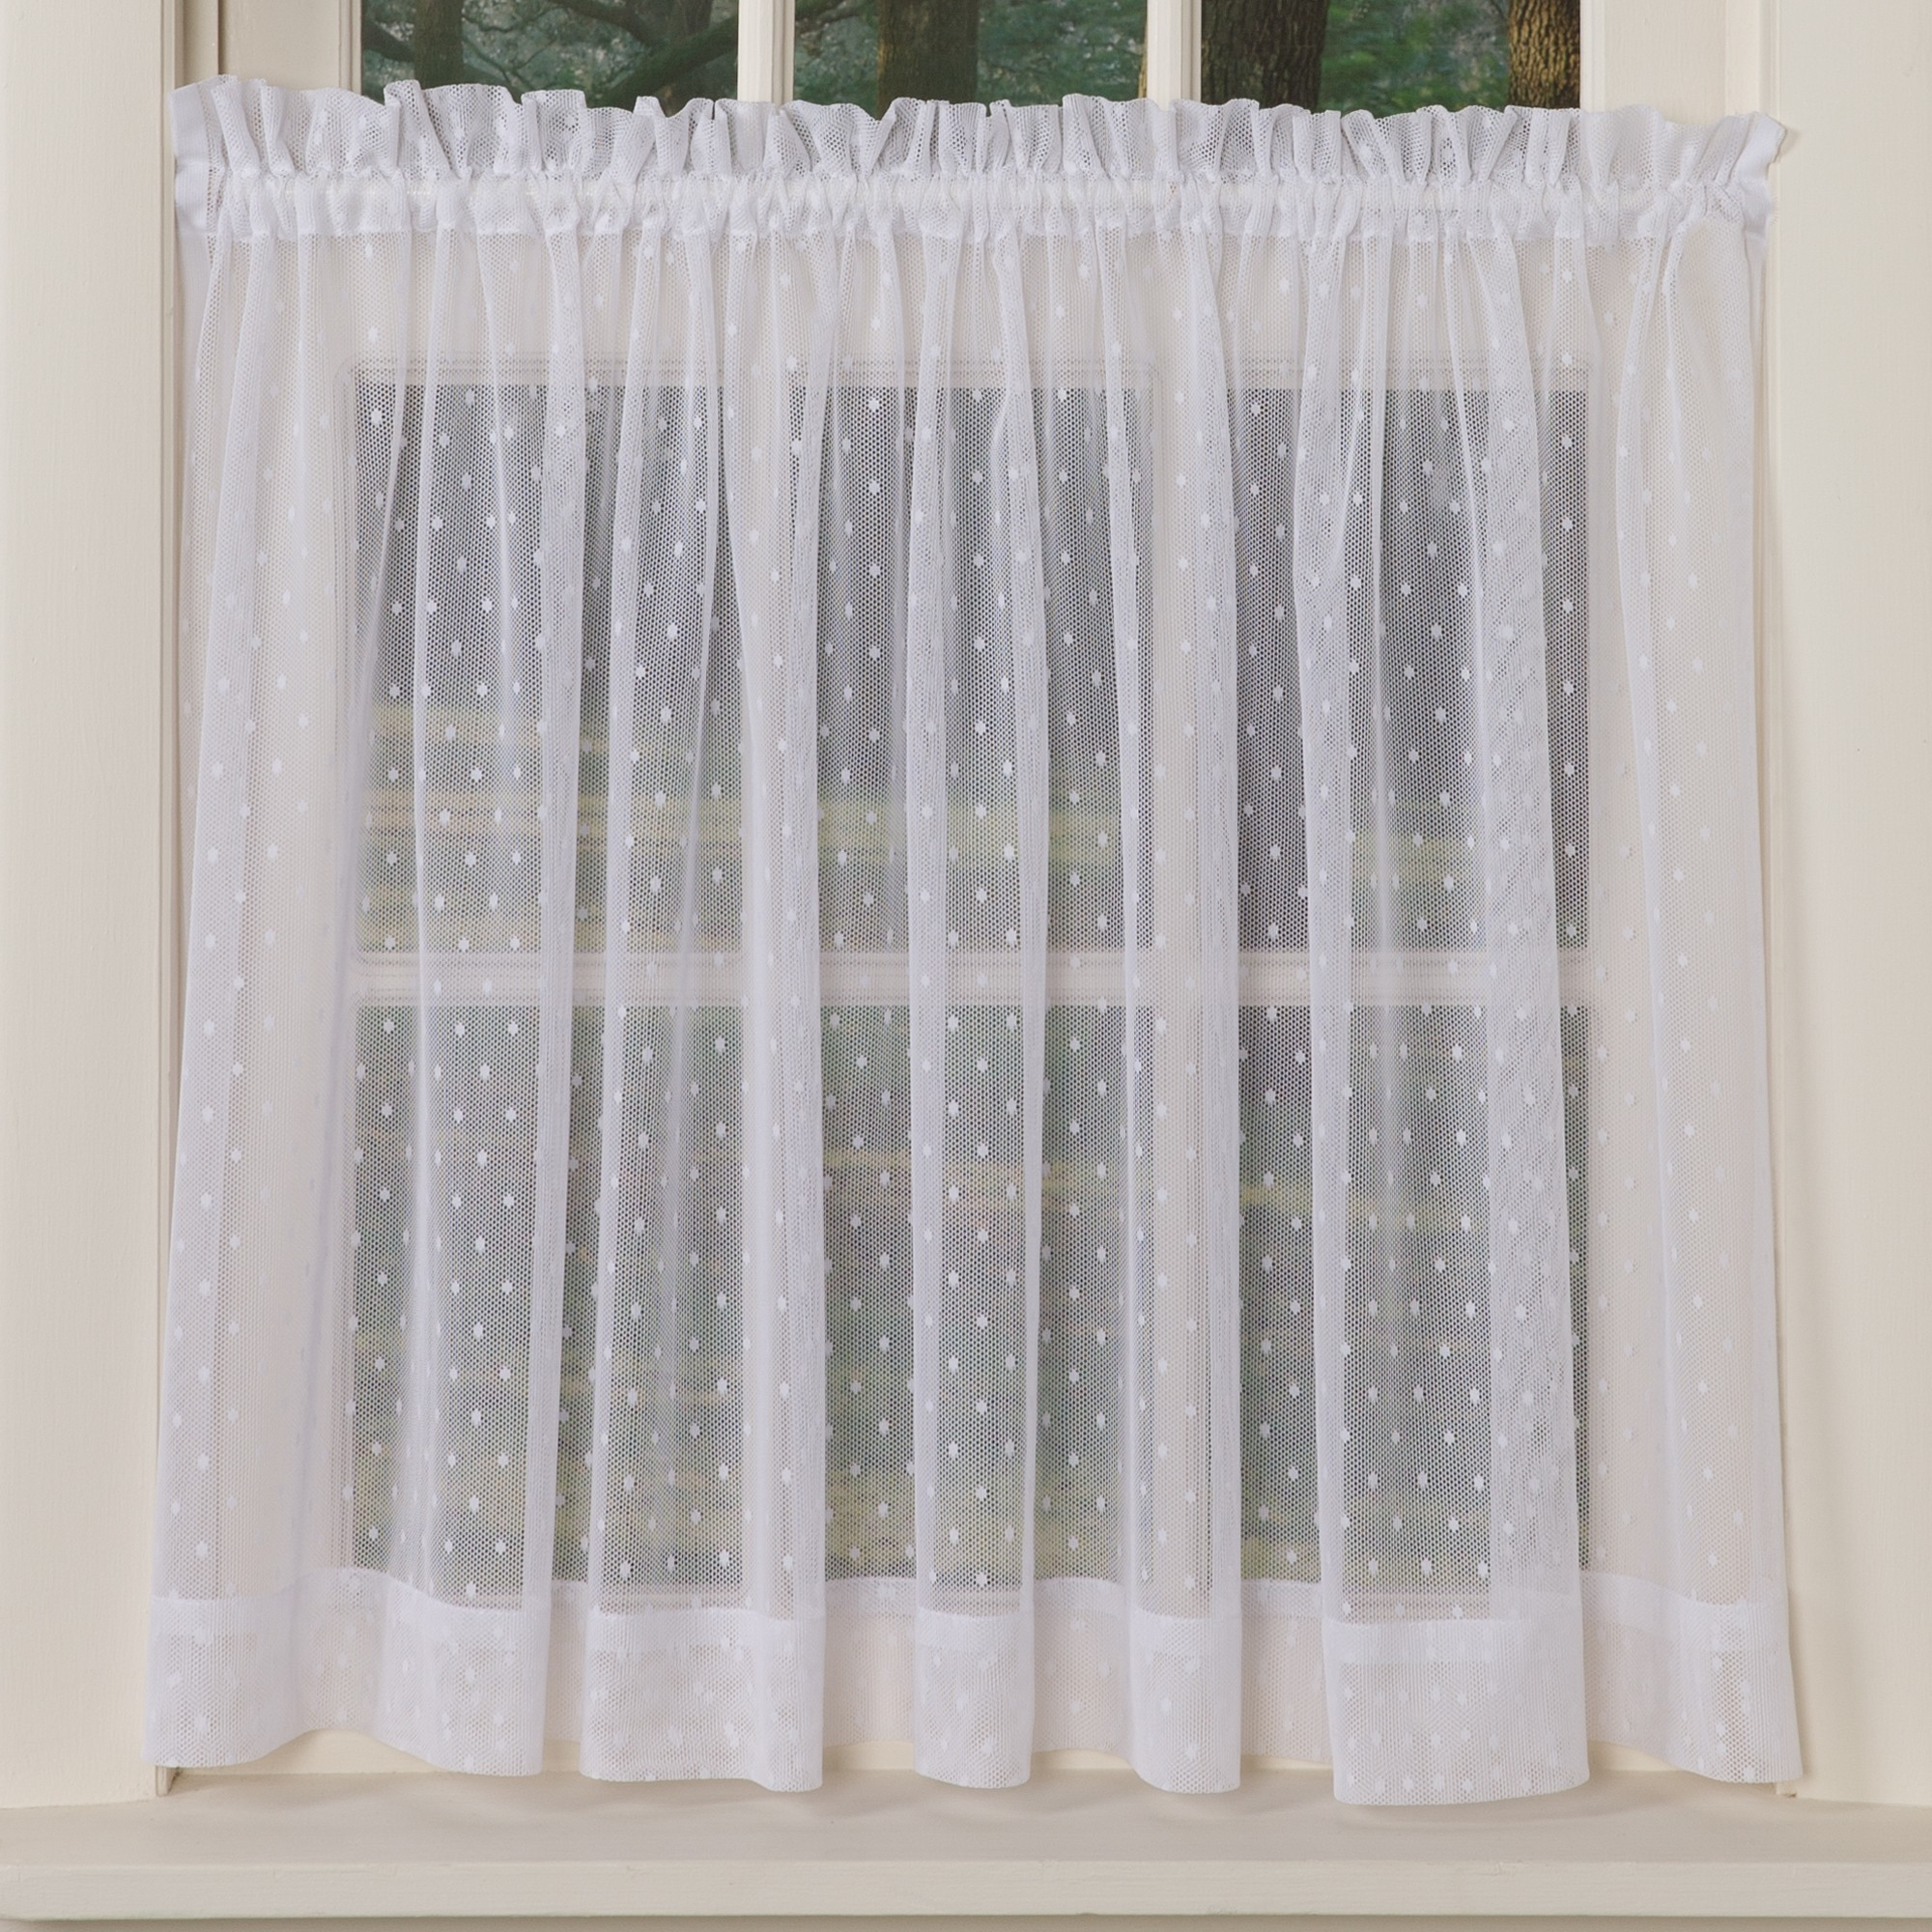 Dotted Sheer Curtains Sturbridge Yankee Workshop Pertaining To Curtains Sheers (View 8 of 25)